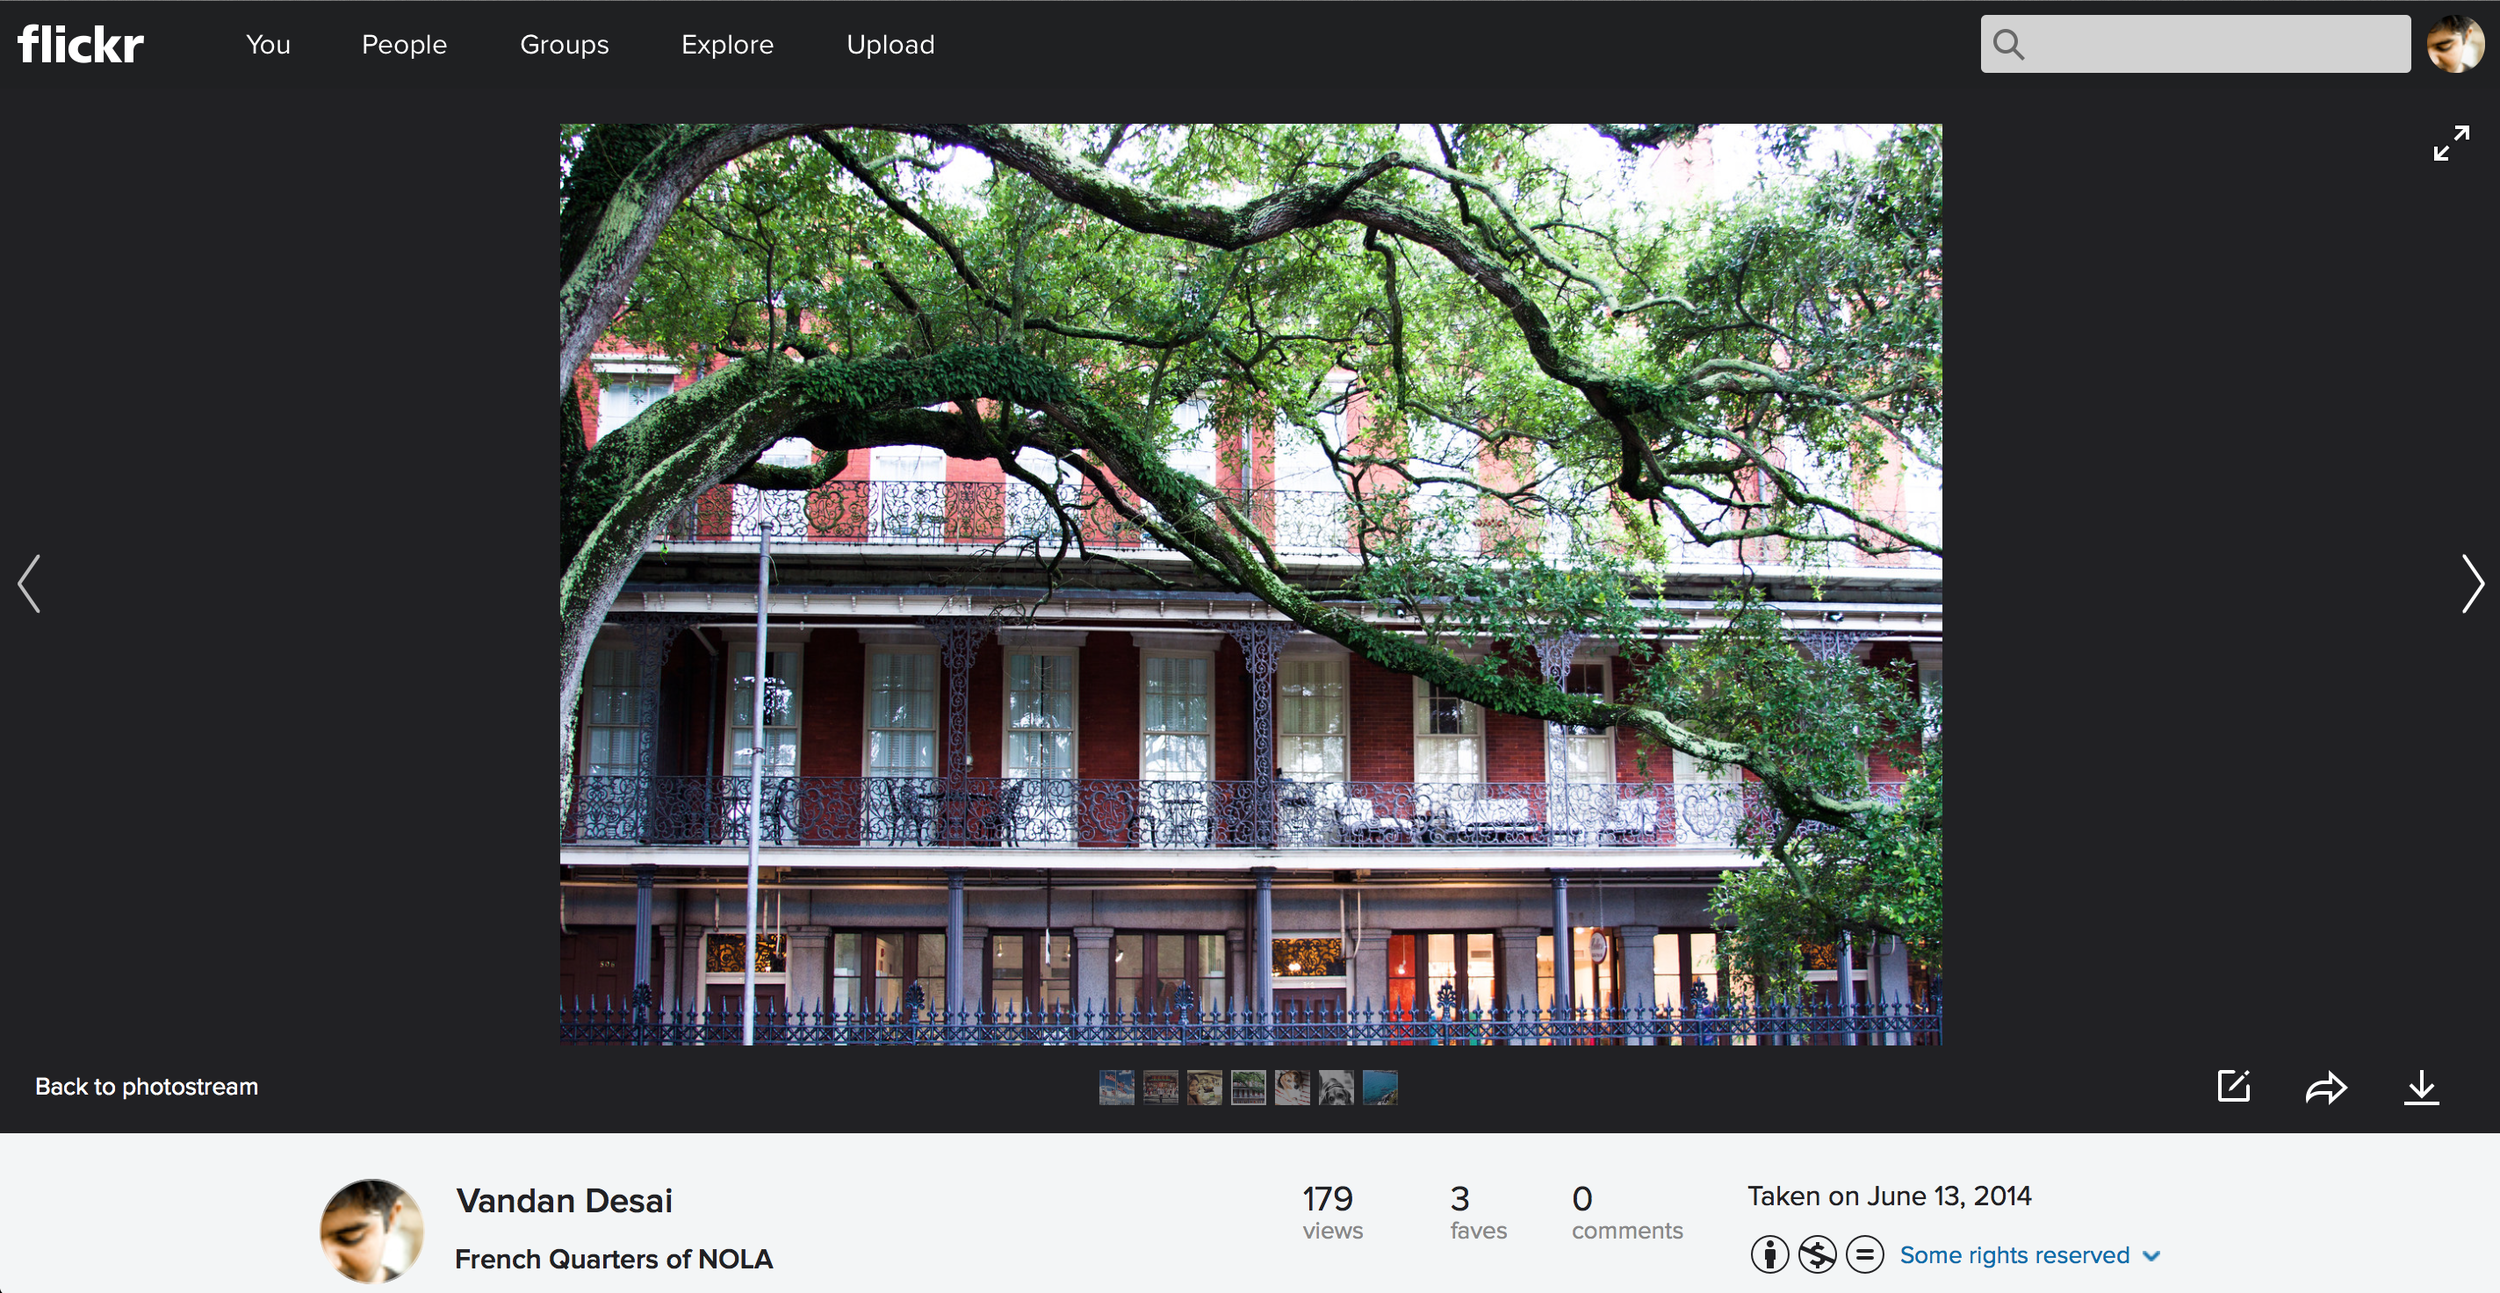 flickr-photo-experience